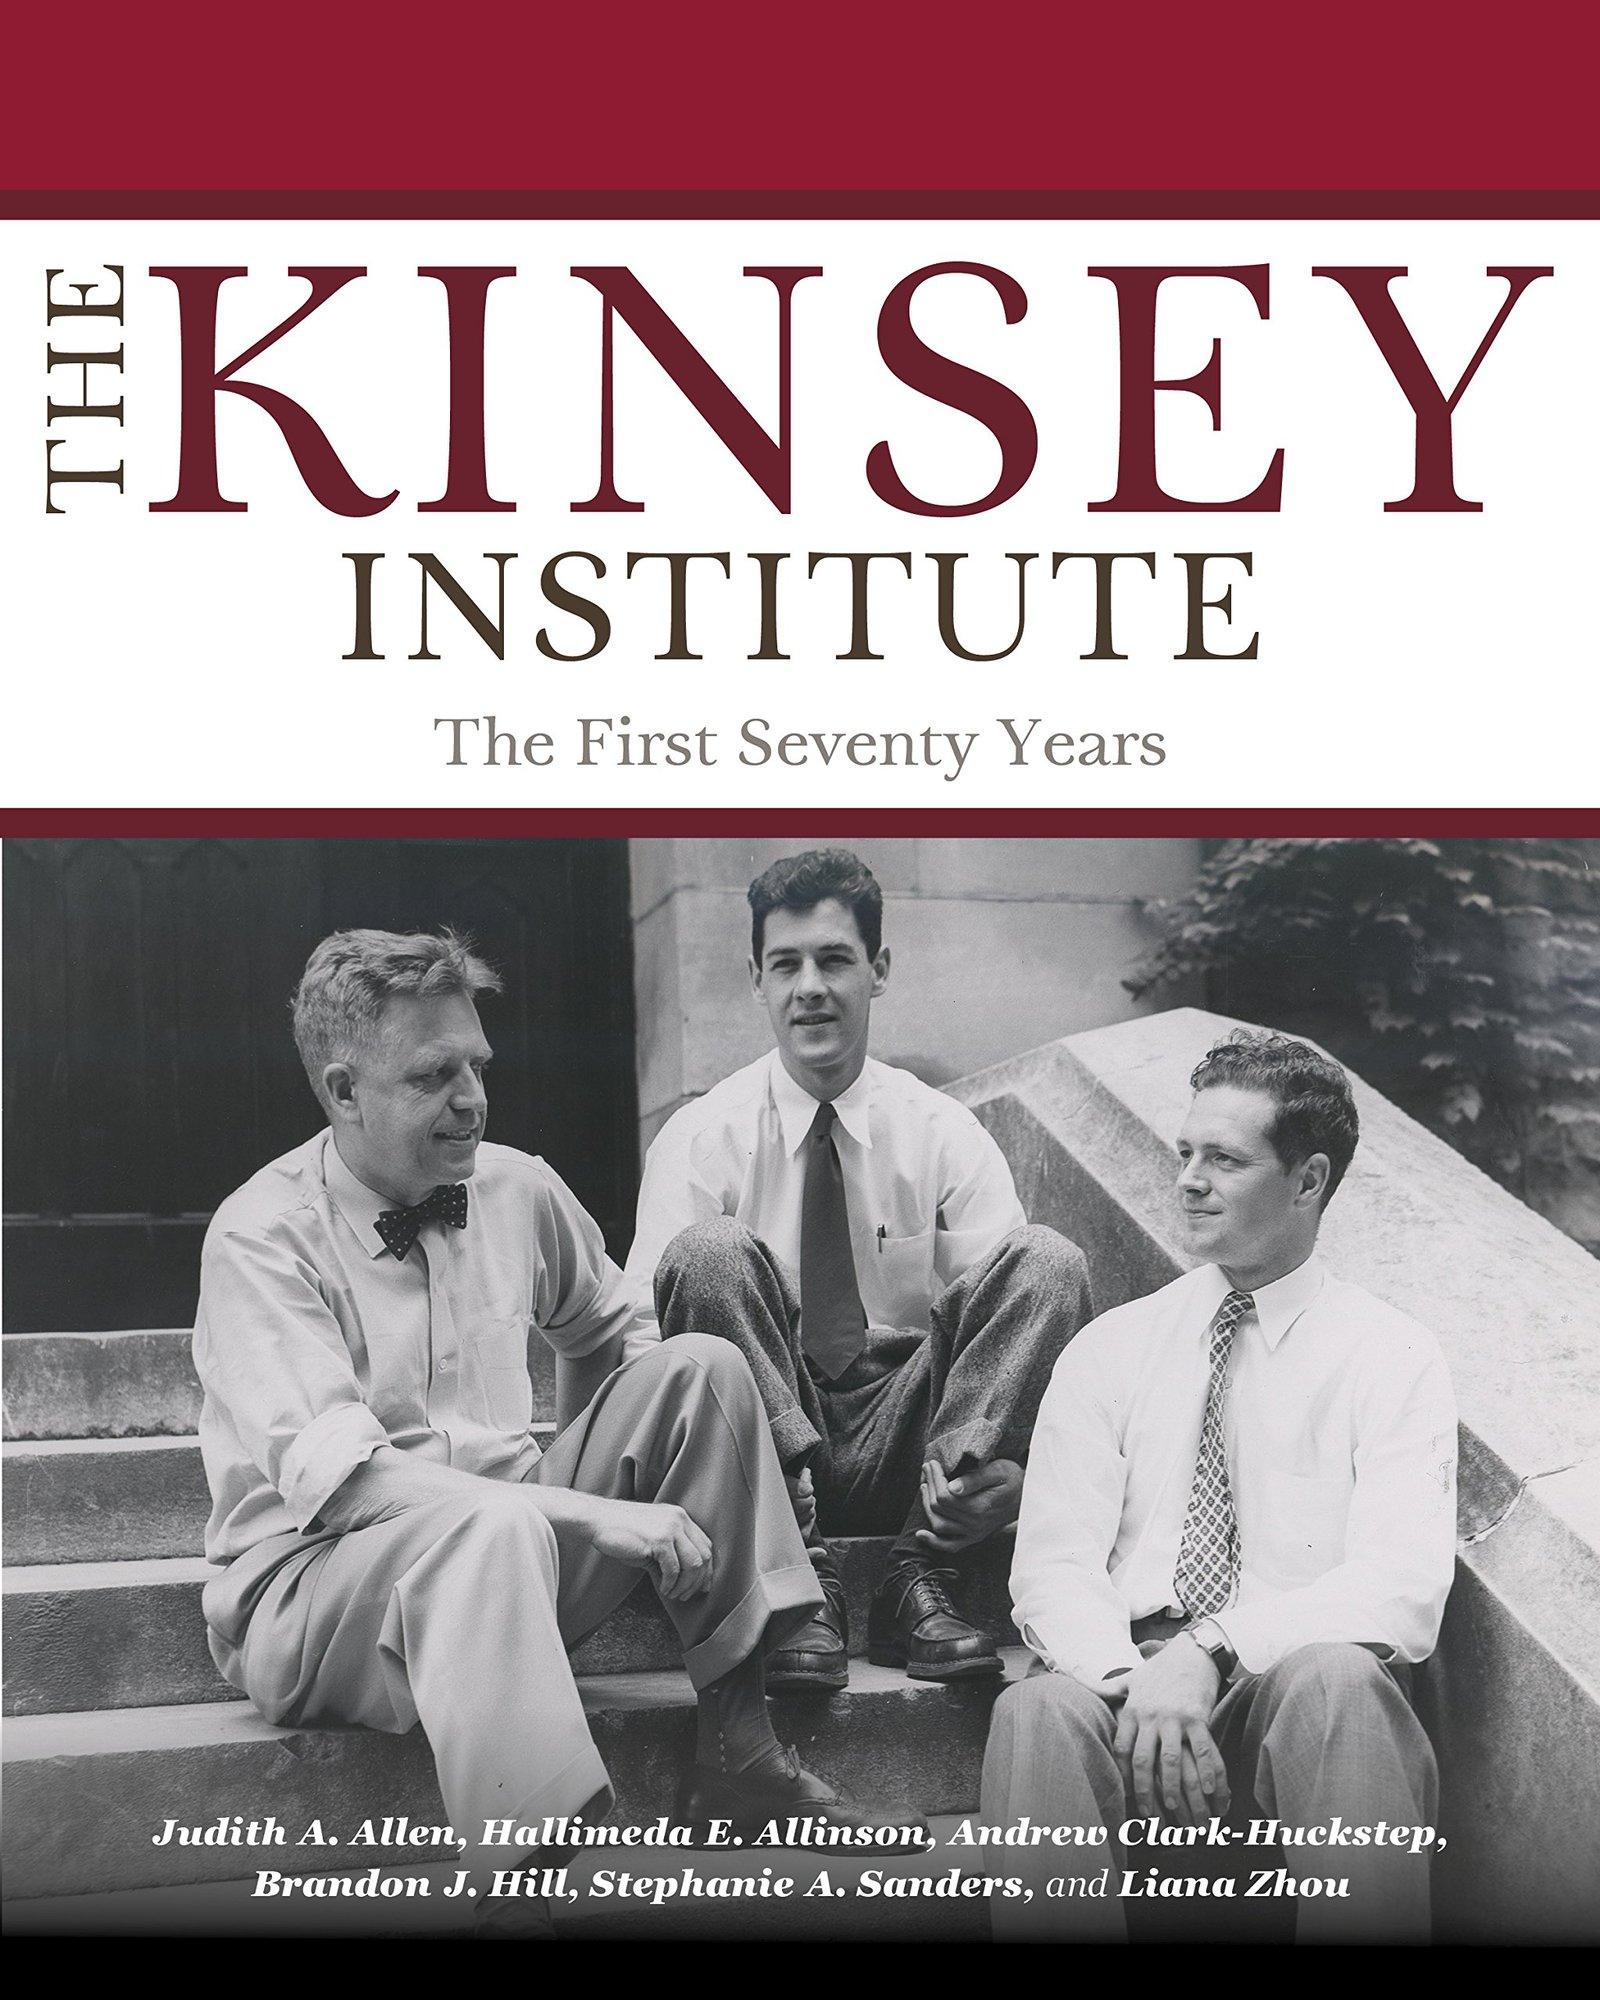 The Kinsey Case (1947-57)